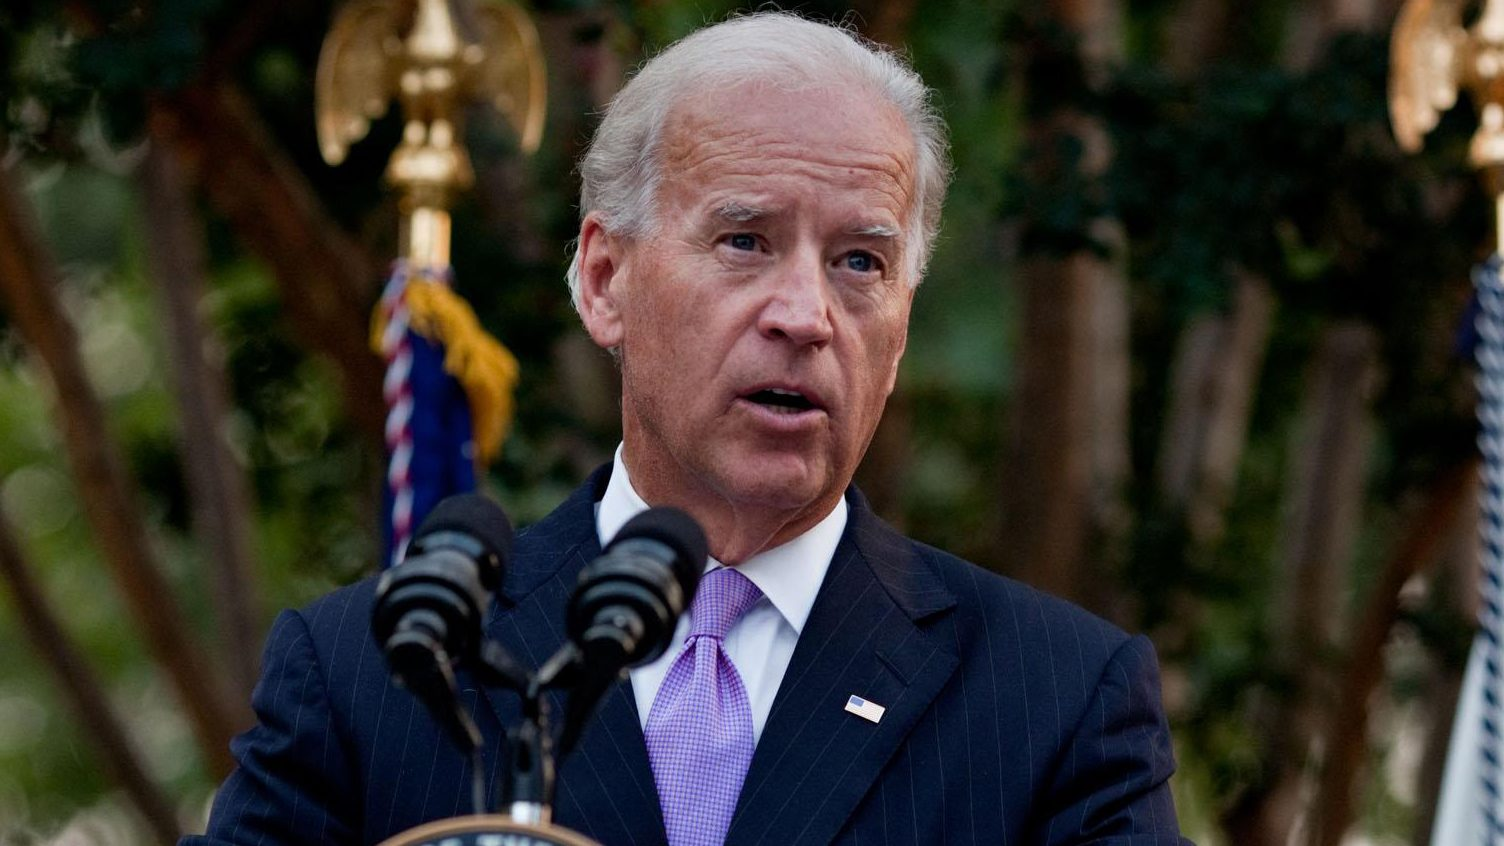 Biden, Still Considering a 2020 Run, Faces New Charges of Improper Touching